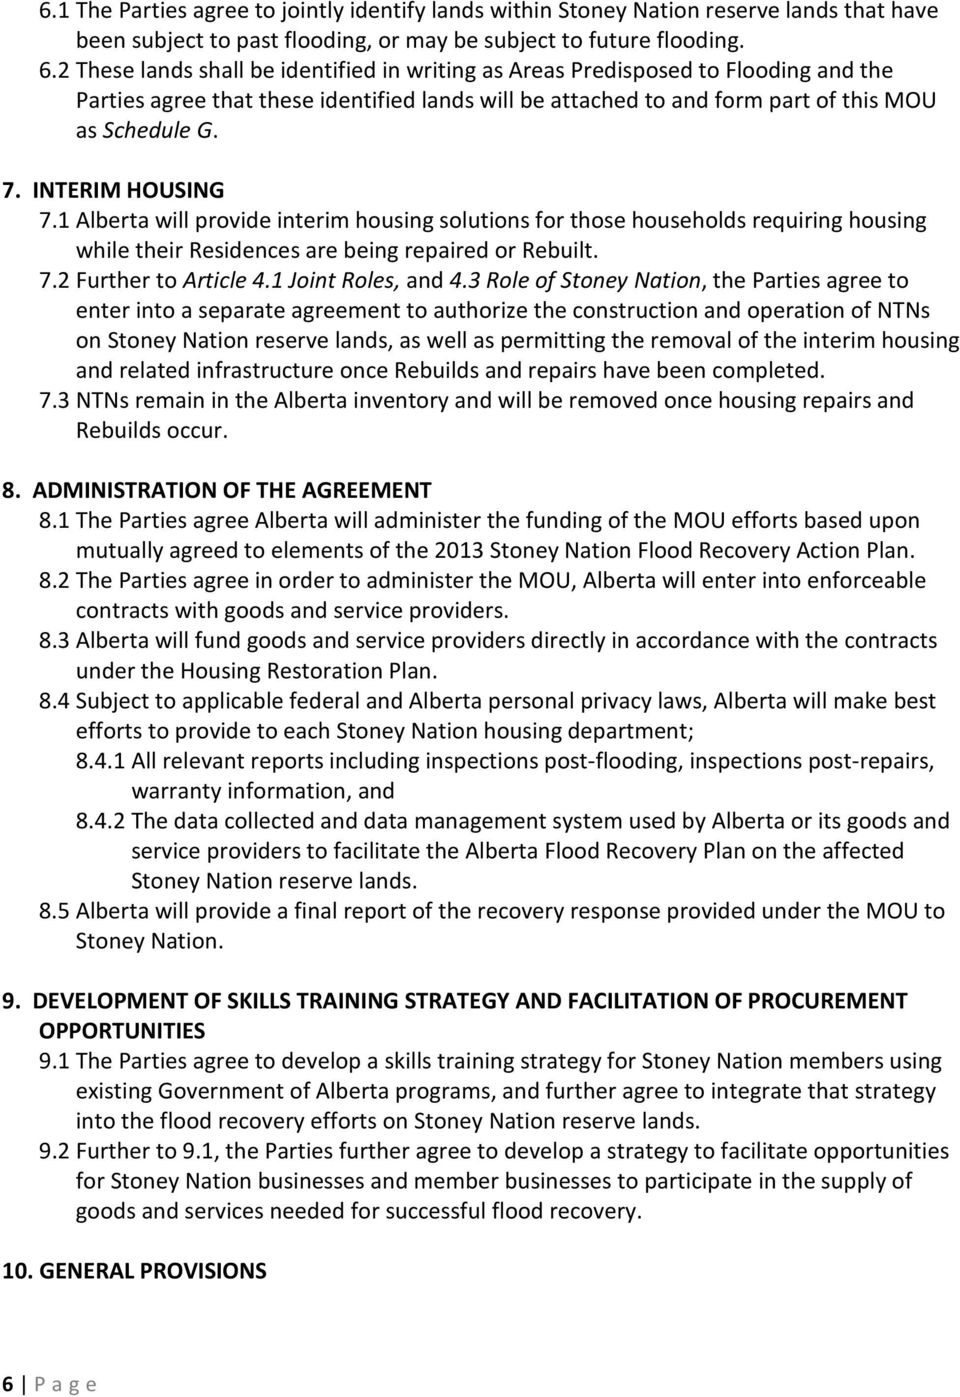 INTERIM HOUSING 7.1 Alberta will provide interim housing solutions for those households requiring housing while their Residences are being repaired or Rebuilt. 7.2 Further to Article 4.